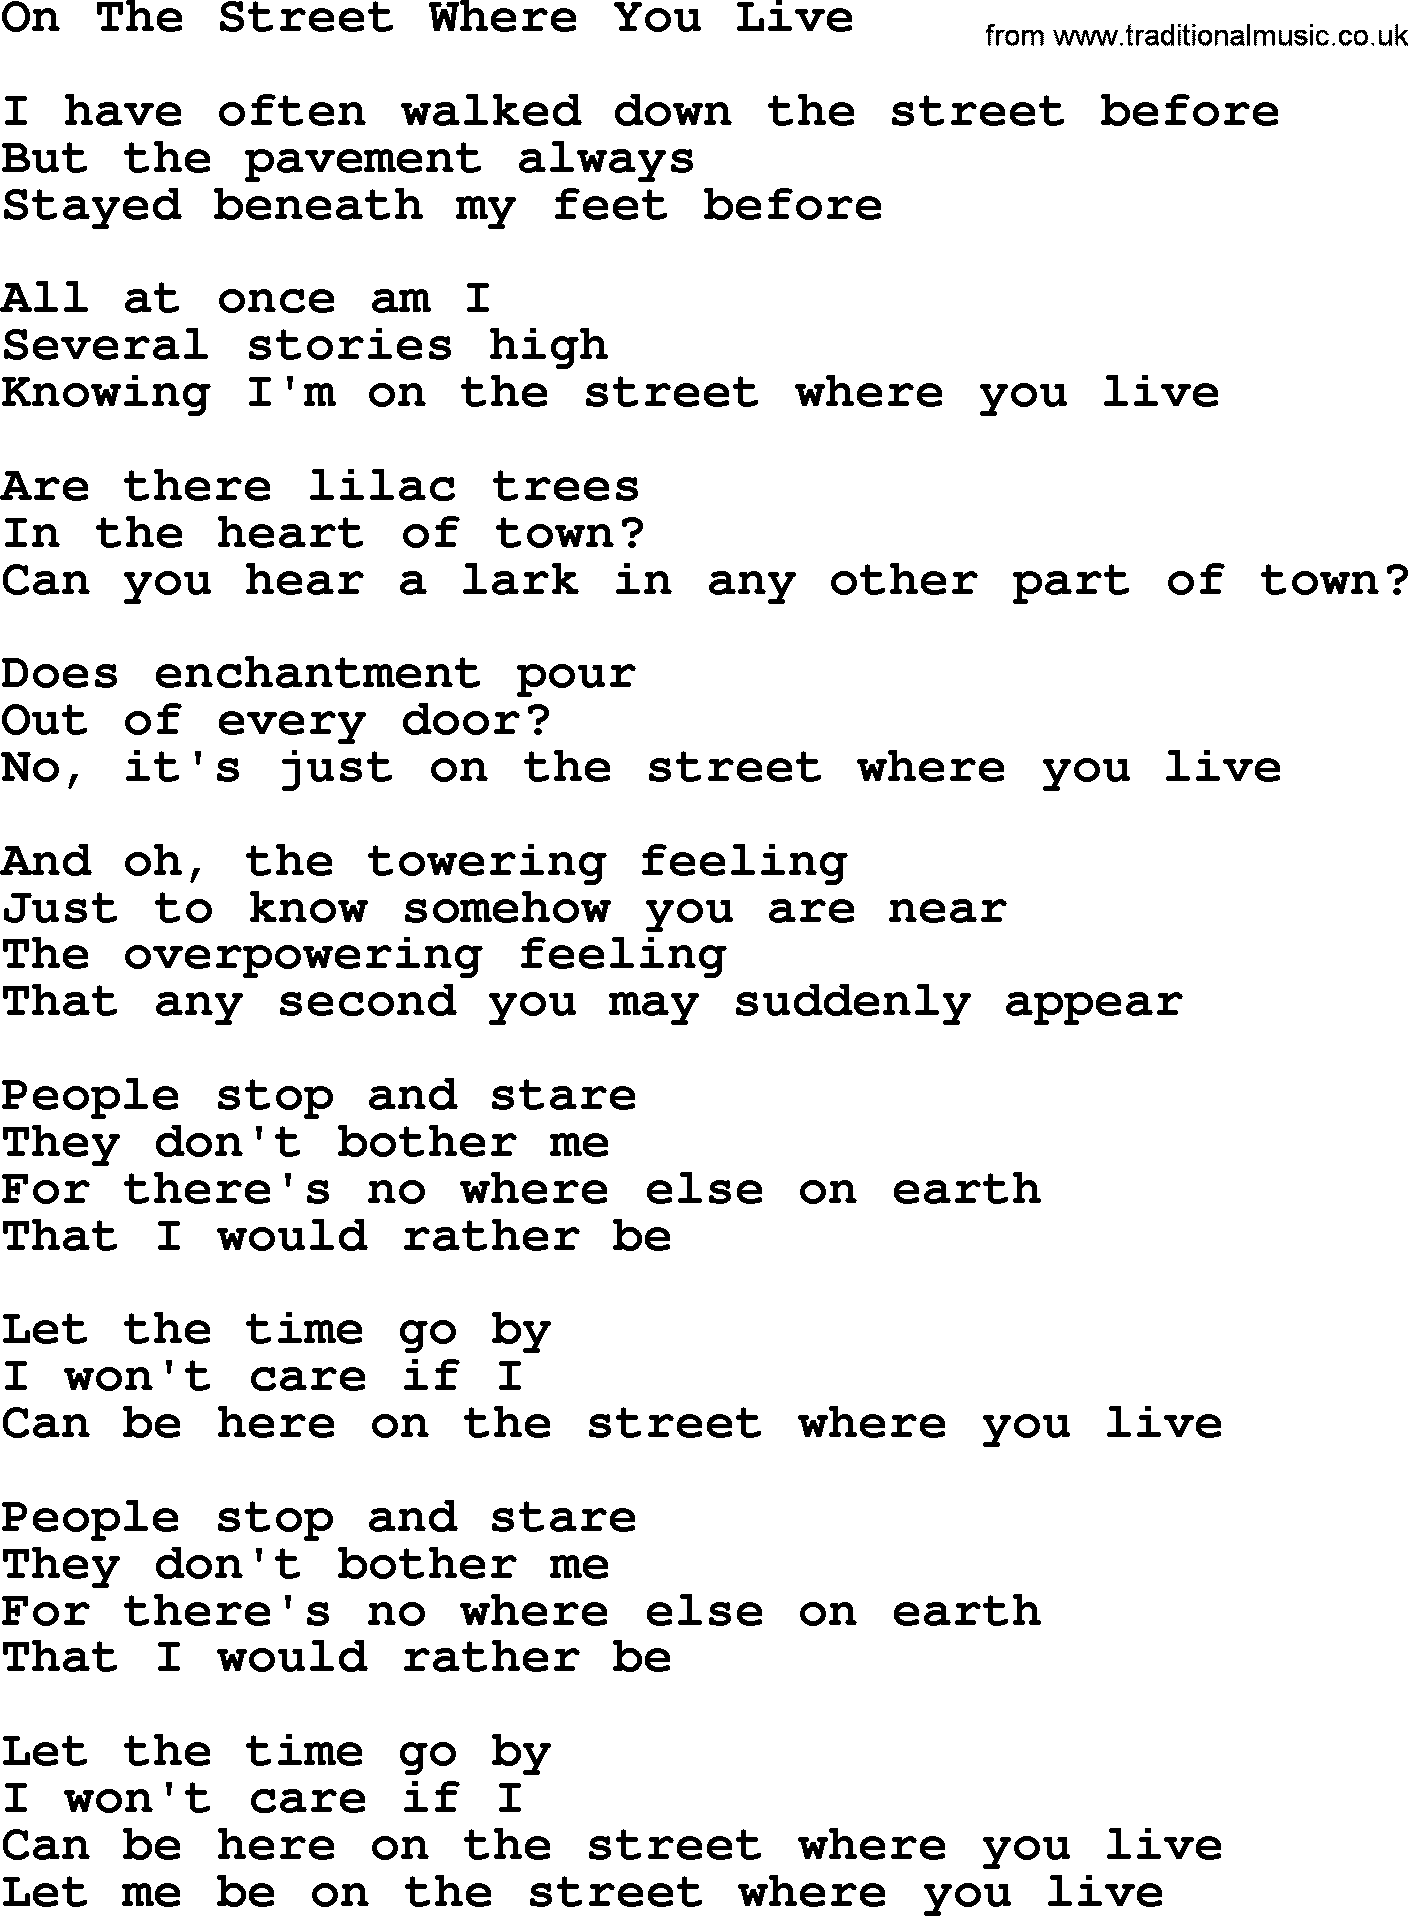 Willie nelson song on the street where you live lyrics willie nelson song on the street where you live lyrics hexwebz Gallery